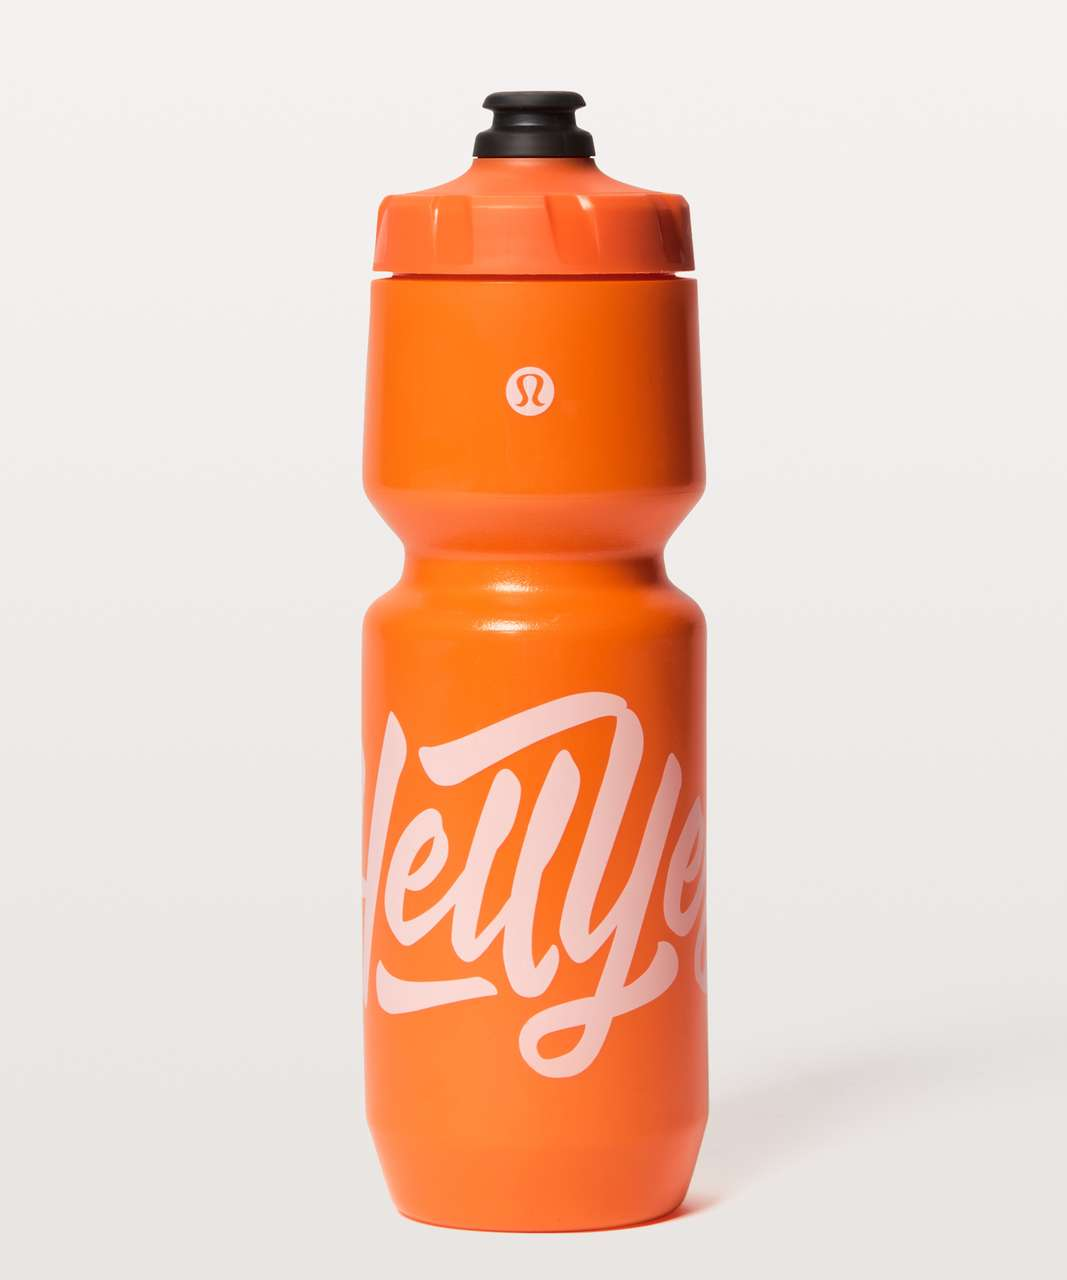 Lululemon Purist Cycling Water Bottle *26 oz - Purist Hell Yes White